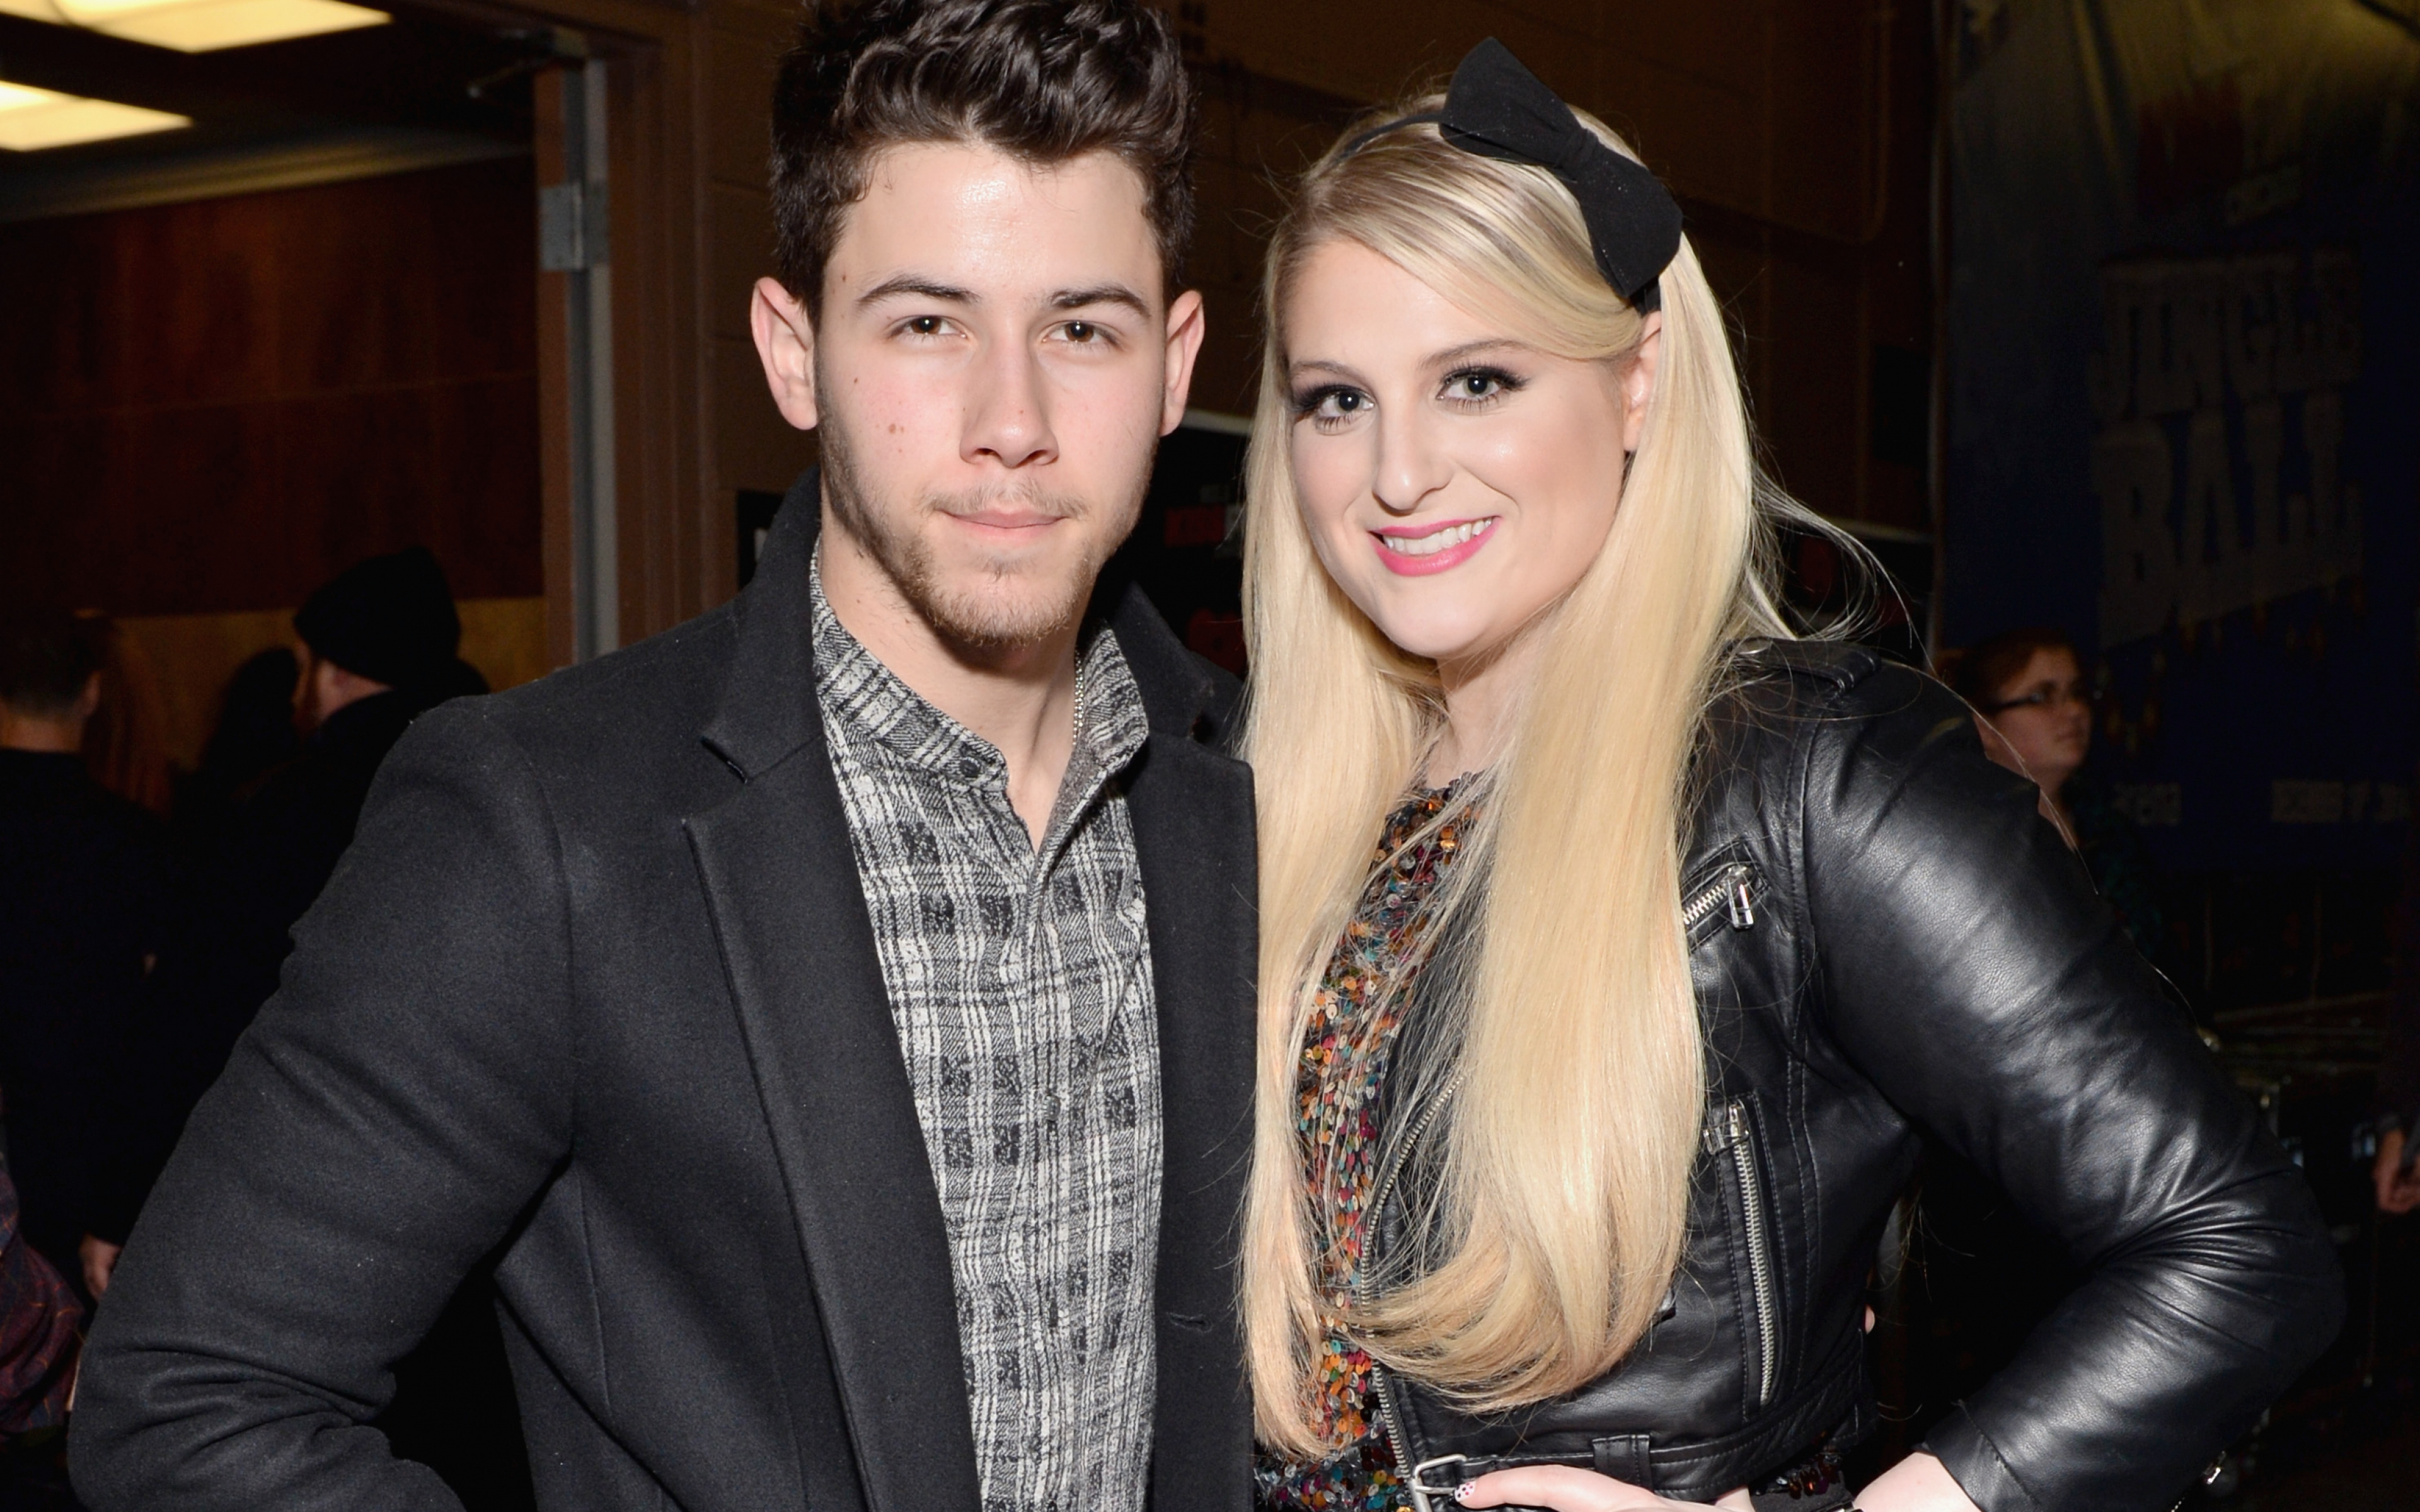 nick jonas, meghan trainor, celebrities